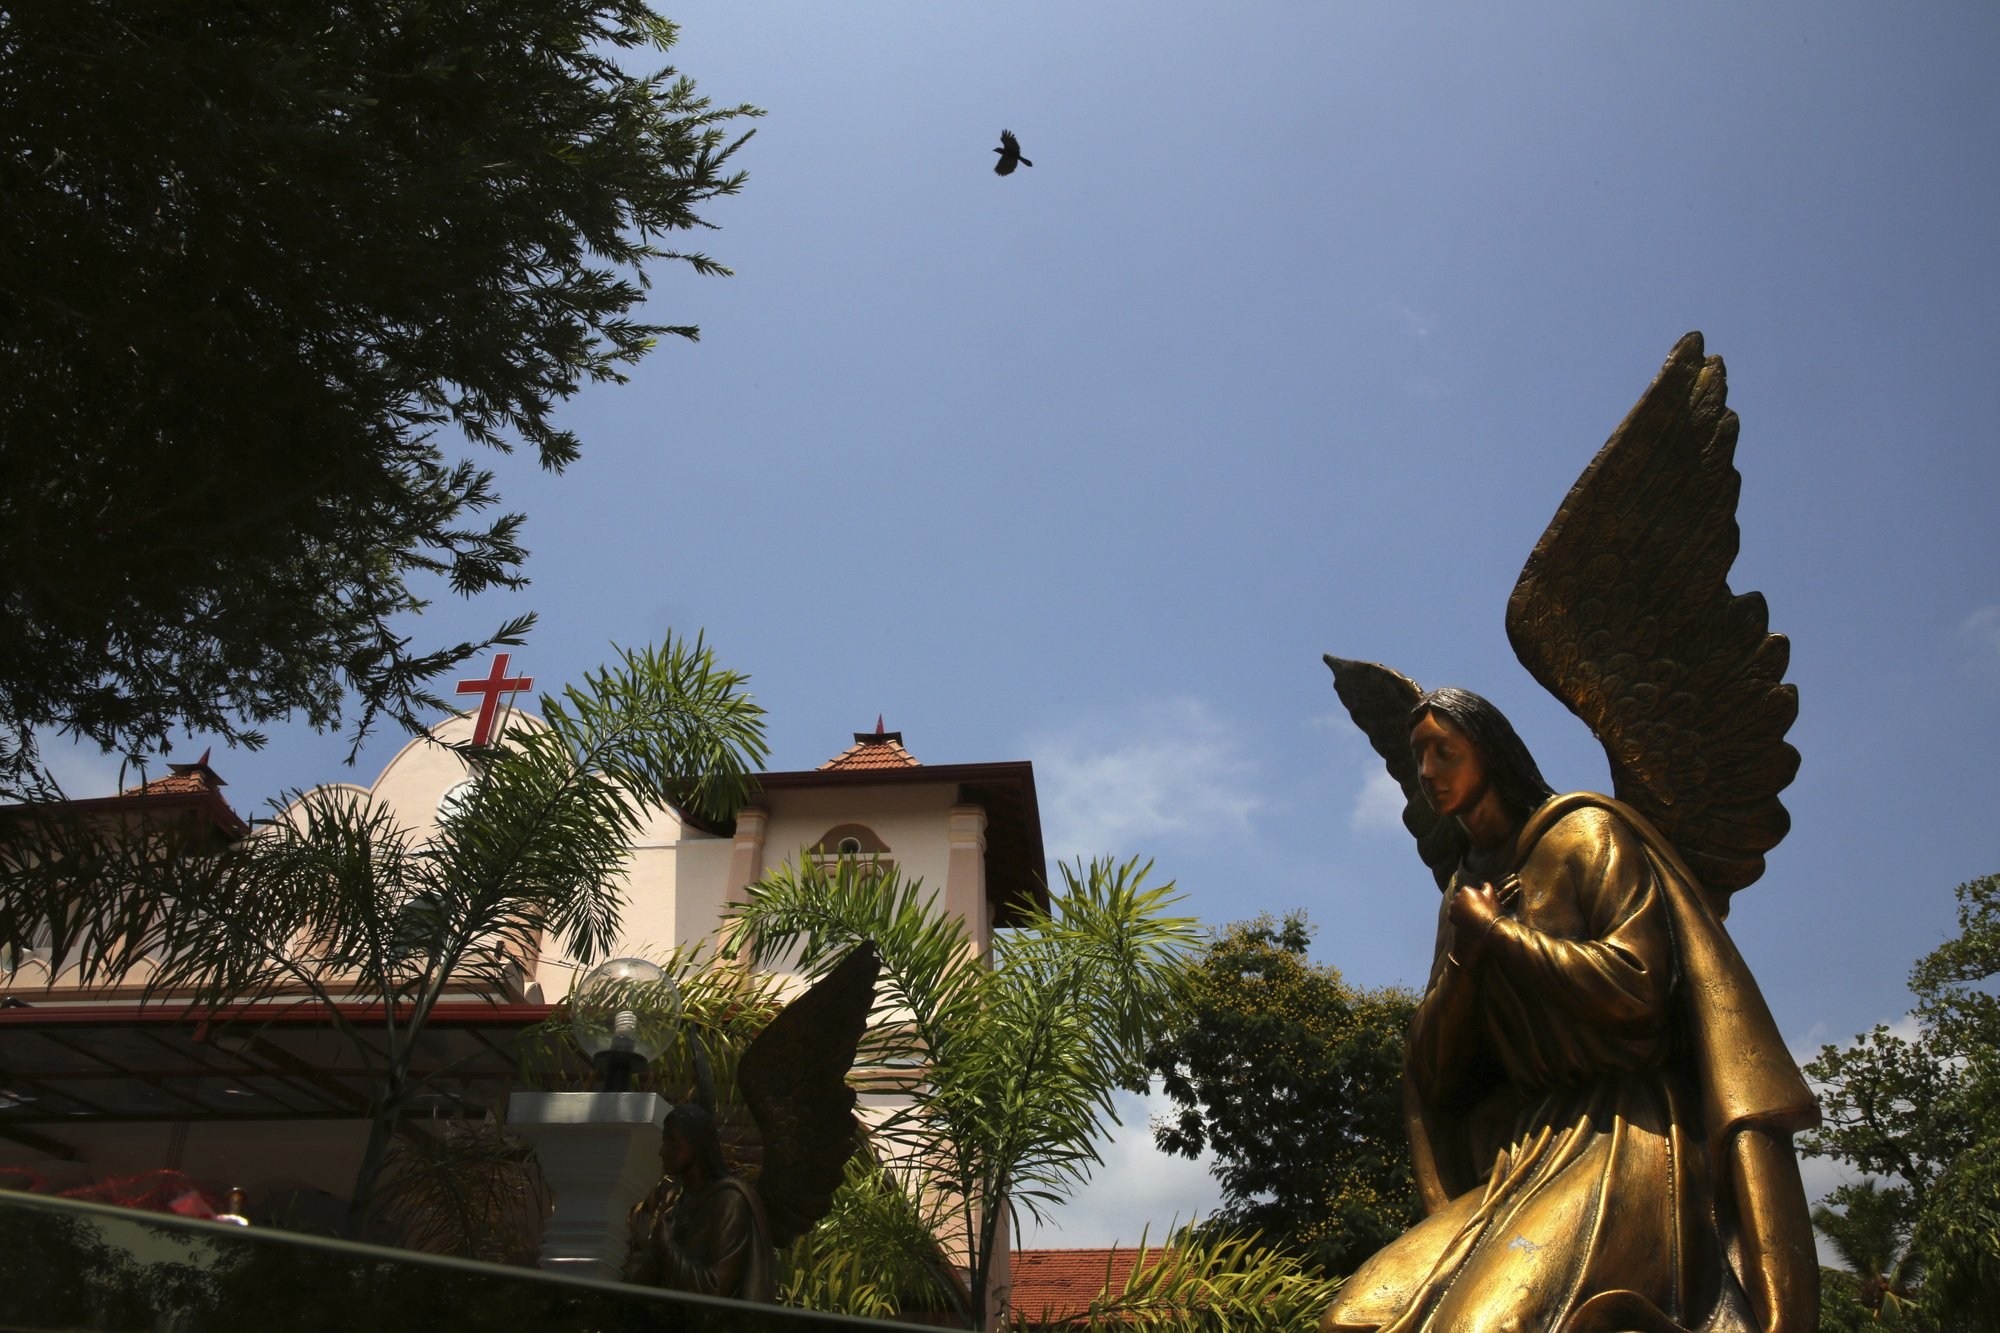 In this Thursday, April 25, 2019 photo, a bird flies over St. Sebastian's Church, where a suicide bomber blew himself up on Easter Sunday in Negombo, north of Colombo, Sri Lanka. Nearly a week later, the smell of death is everywhere, though the bodies are long gone. From inside, you see destruction wherever you look. But from outside the church, if you ignore the police tape and if you're standing far enough away, you might think nothing had happened there at all. (AP Photo/Manish Swarup)